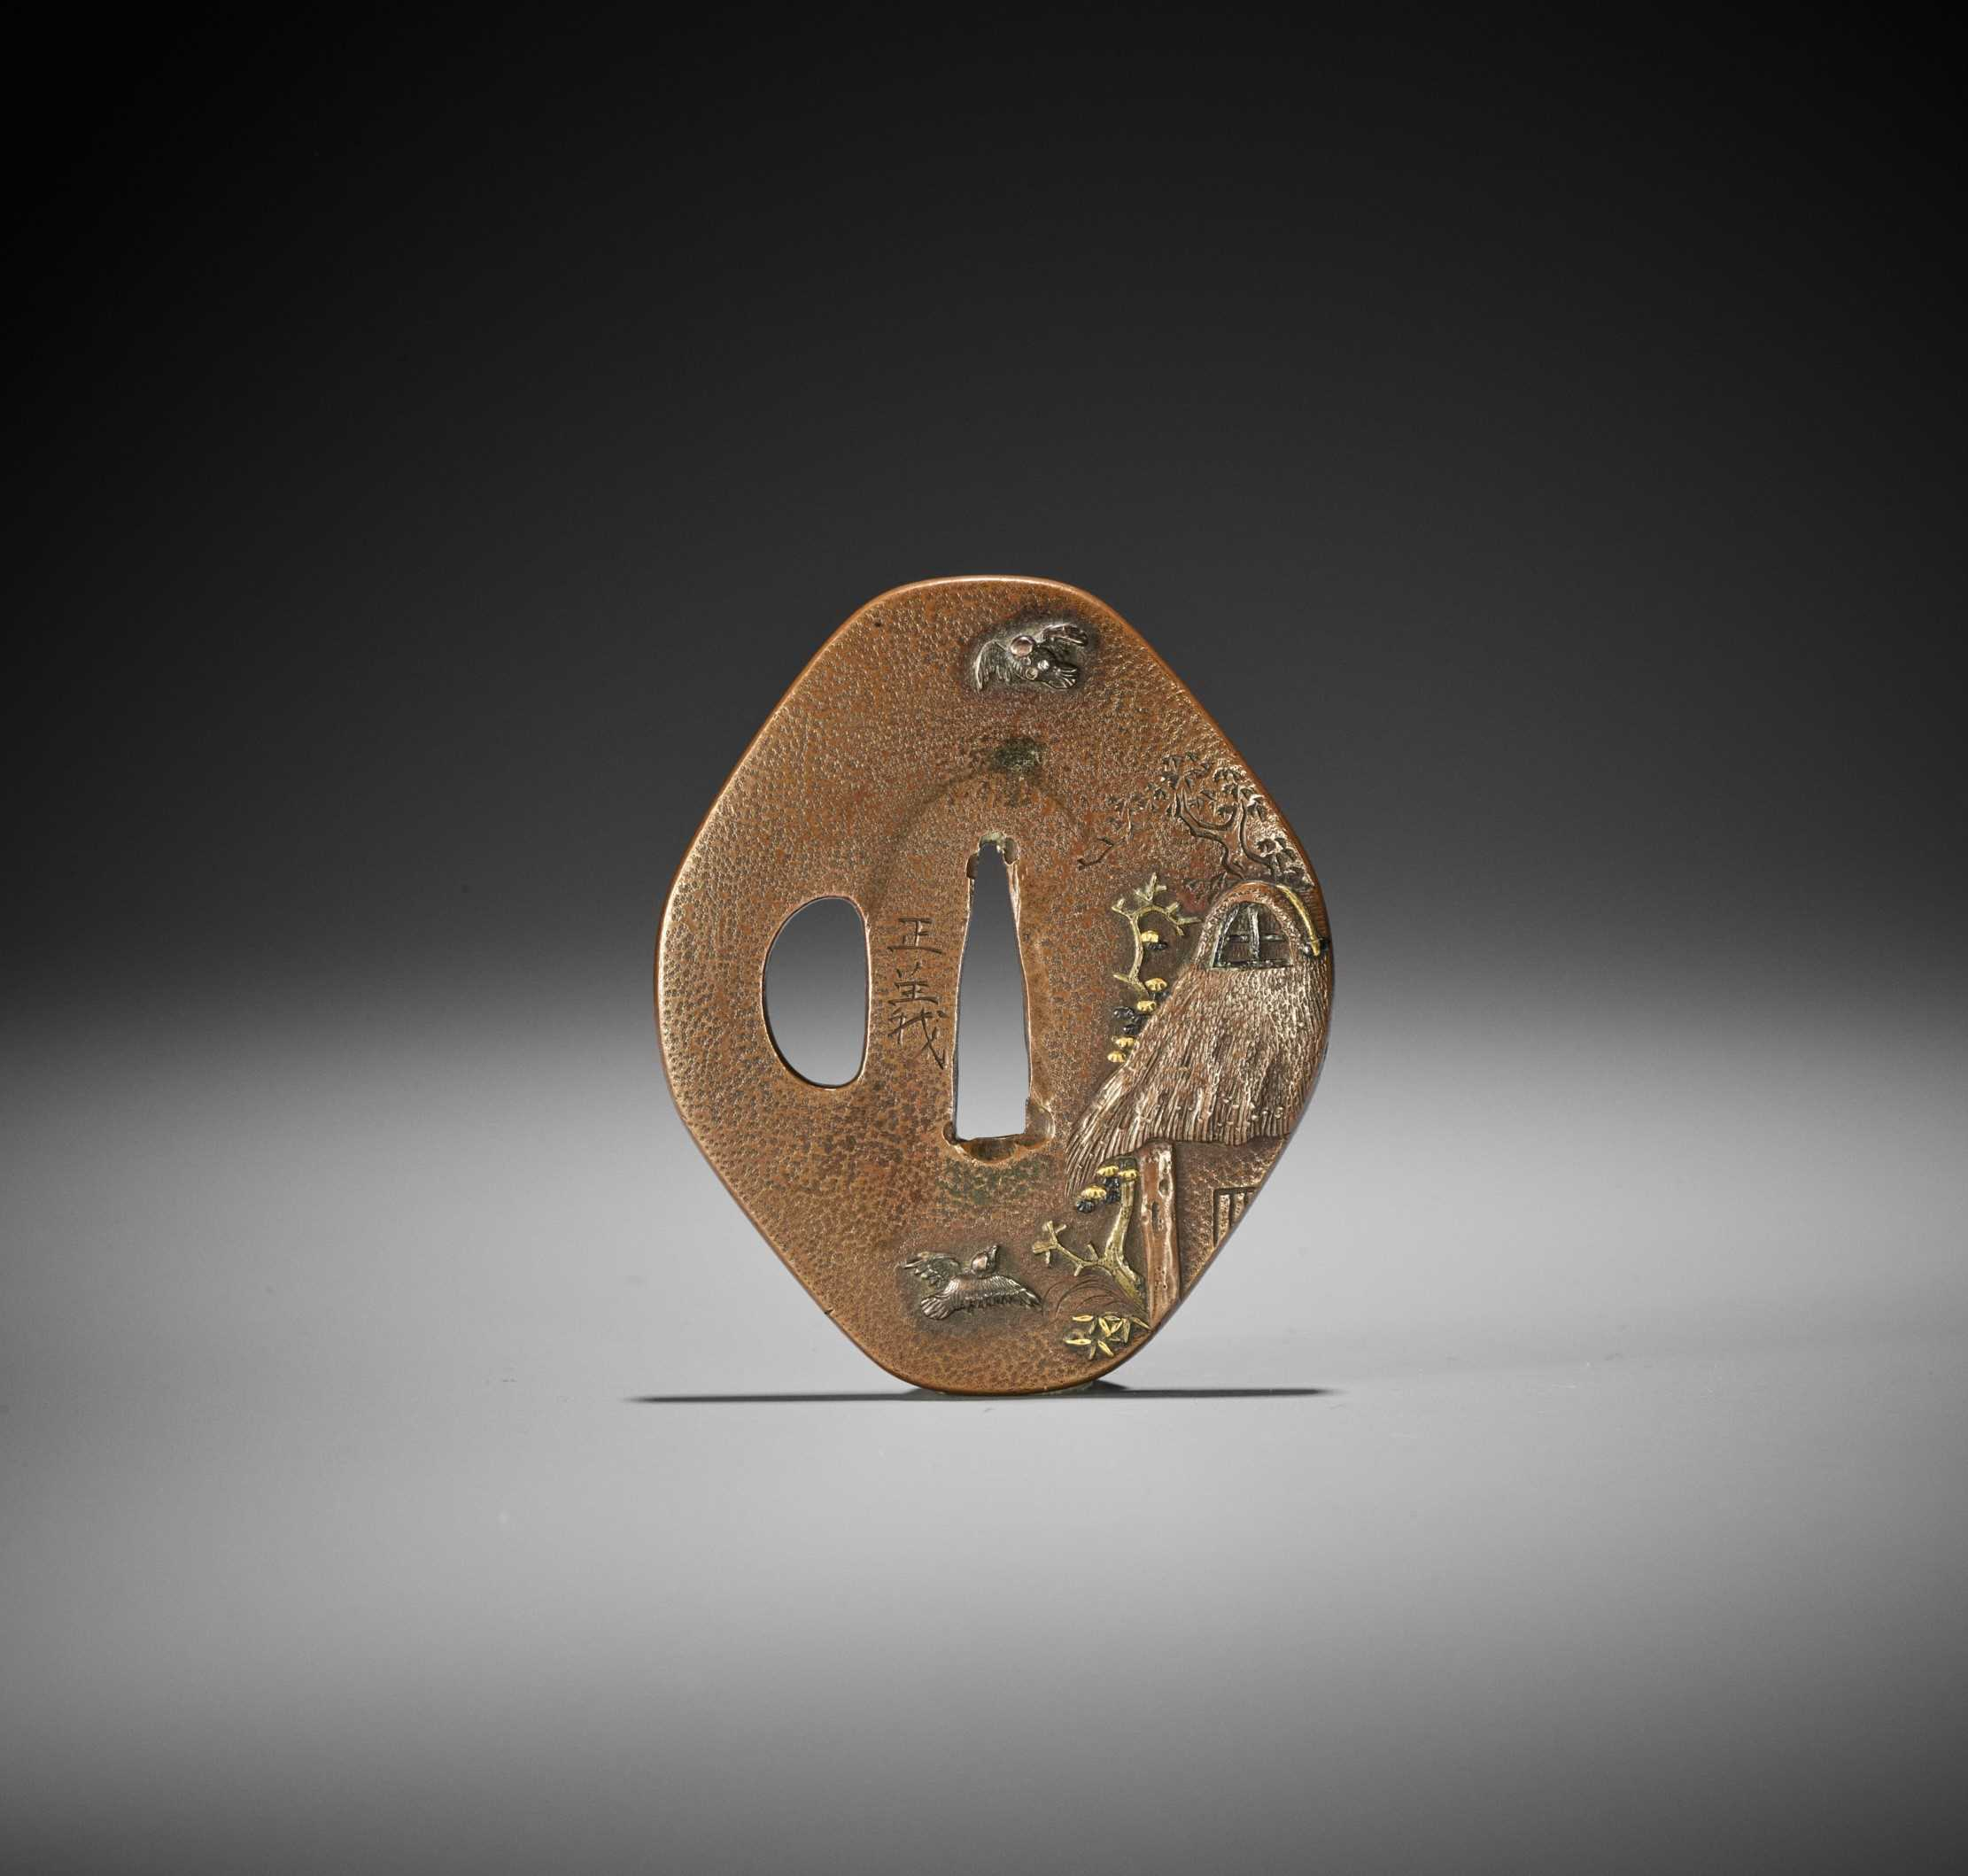 MASAYOSHI: A FINE COPPER TSUBA WITH SPARROWS AND THATCHED HUT